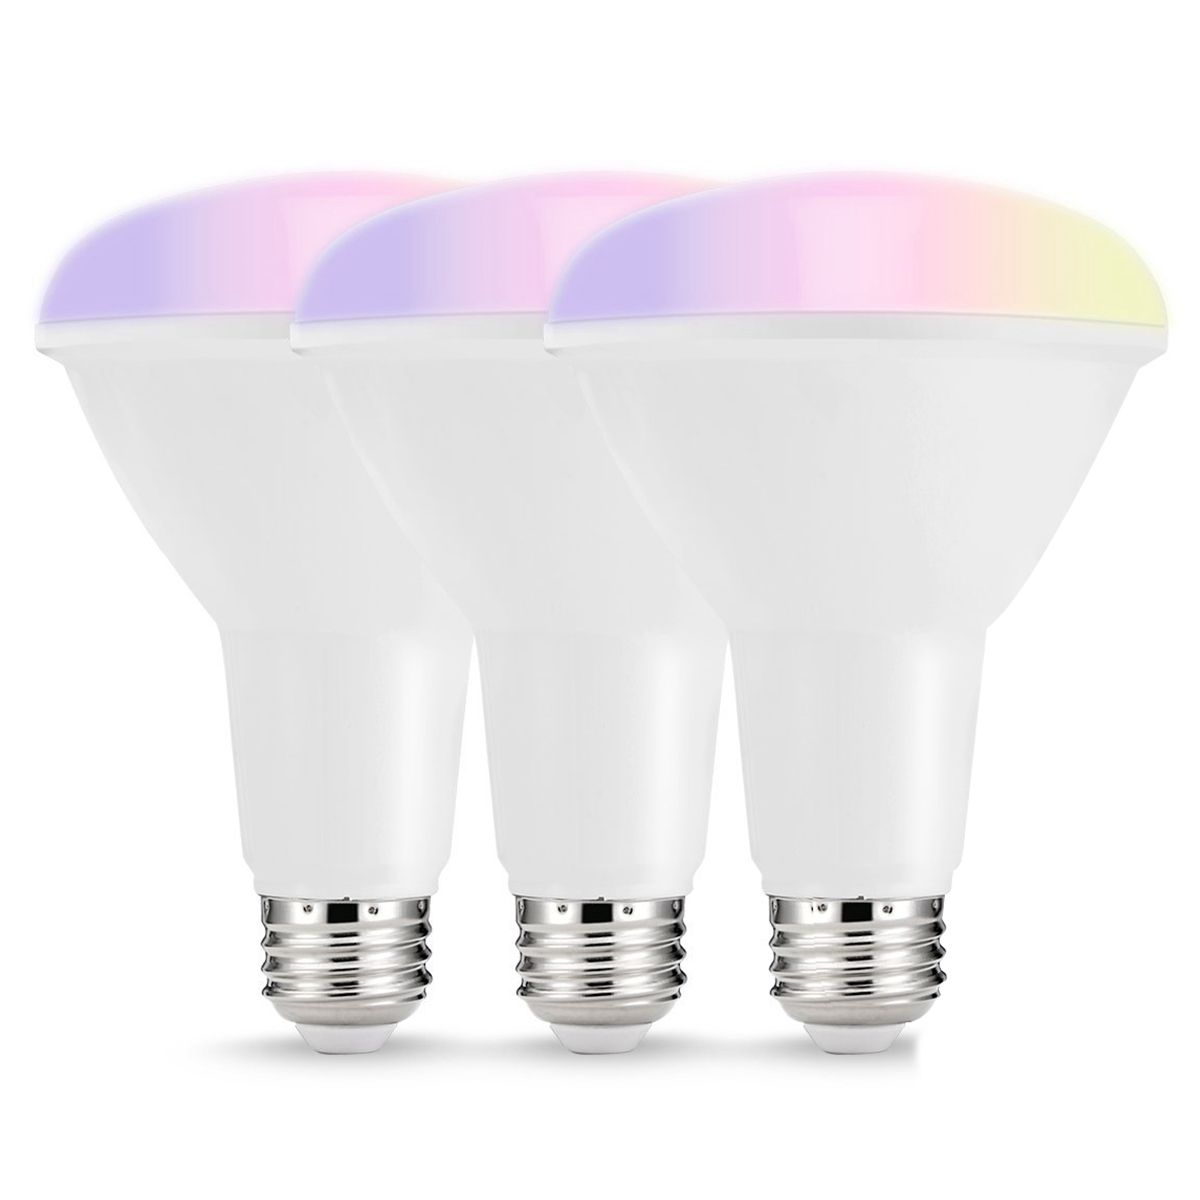 Dsha Smart Led Bulbs Multicolored Wifi Led Lights Br30 Dimmable Recessed Light Bulbs 75w 80w Equivalent Flood Light Compat Led Bulbs Tubes Aliexpress